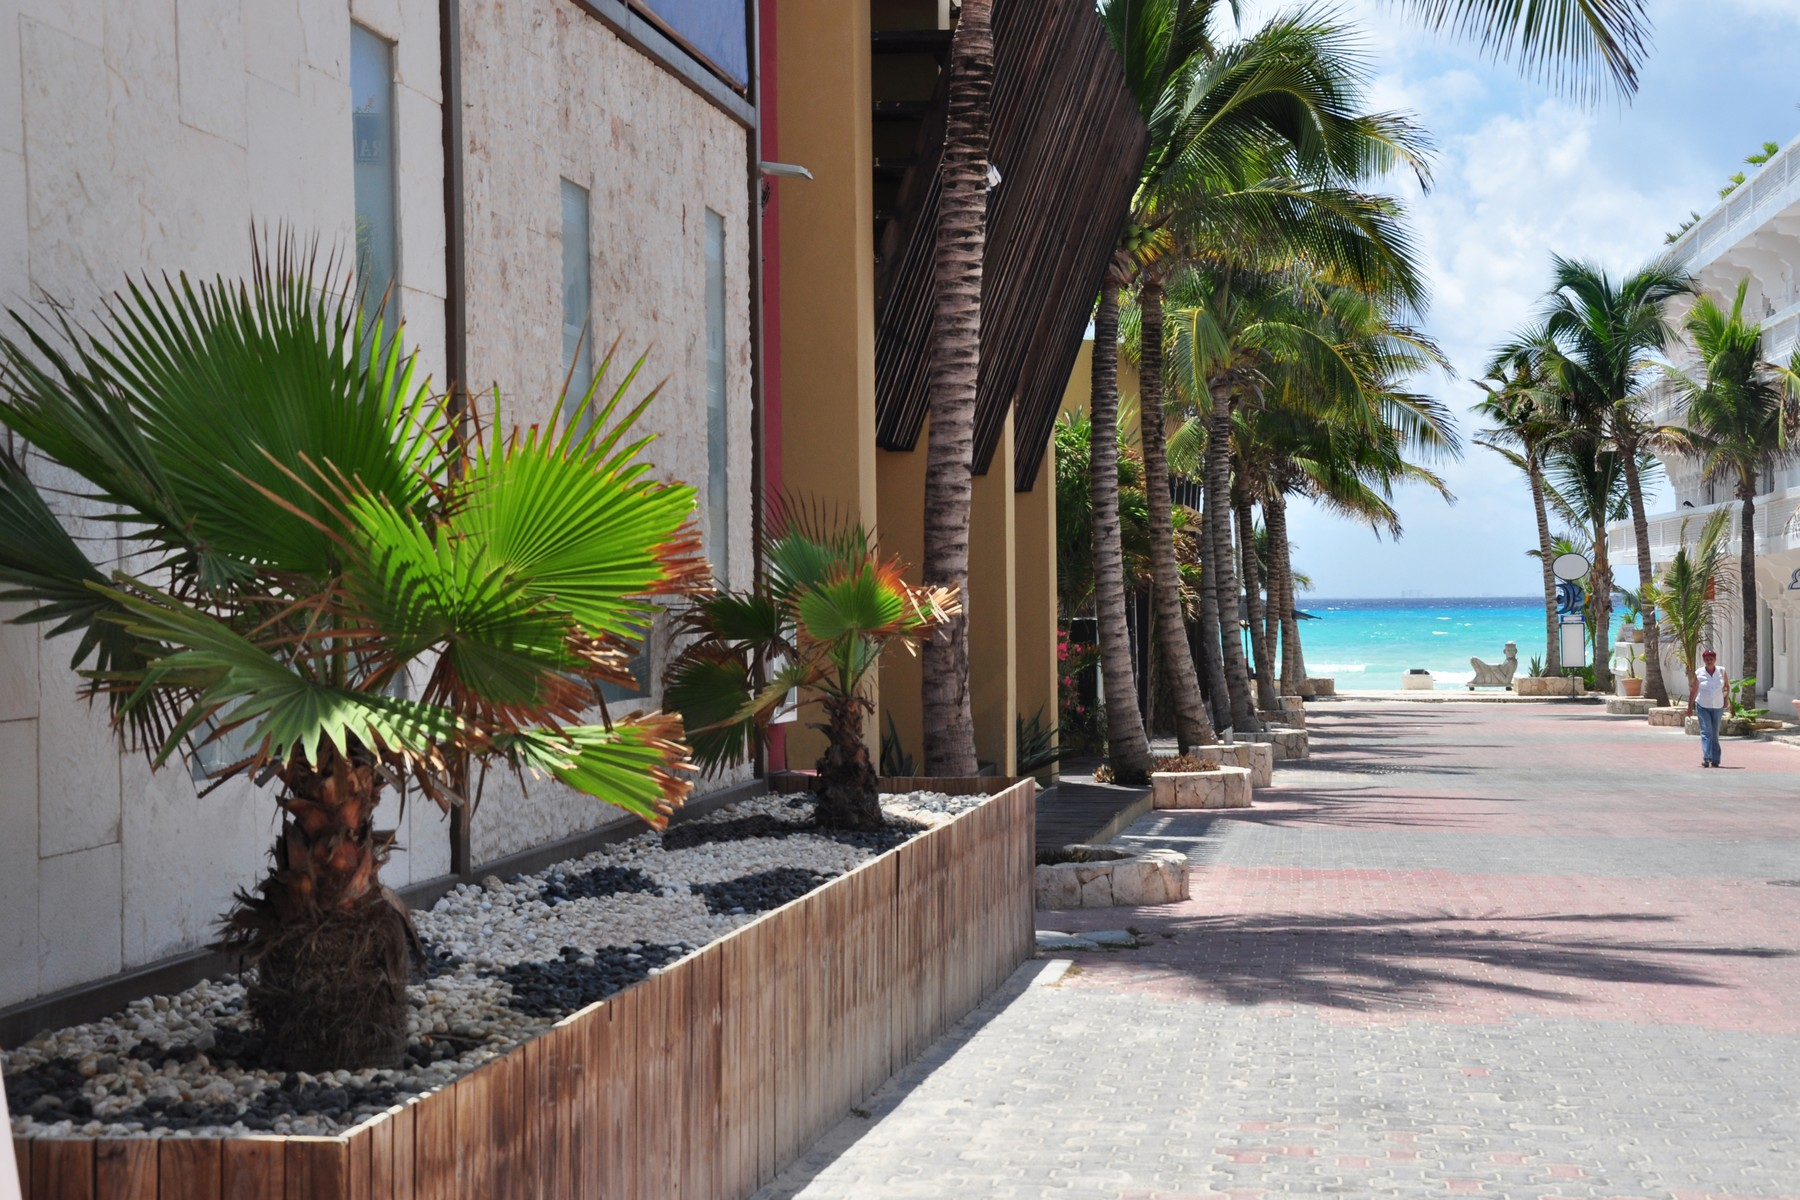 Land for Sale at DEVELOPMENT PARCEL IN PREMIUM LOCATION IN DOWNTOWN Calle 8 entre 5ta Av. y la playa Playa Del Carmen, 77710 Mexico